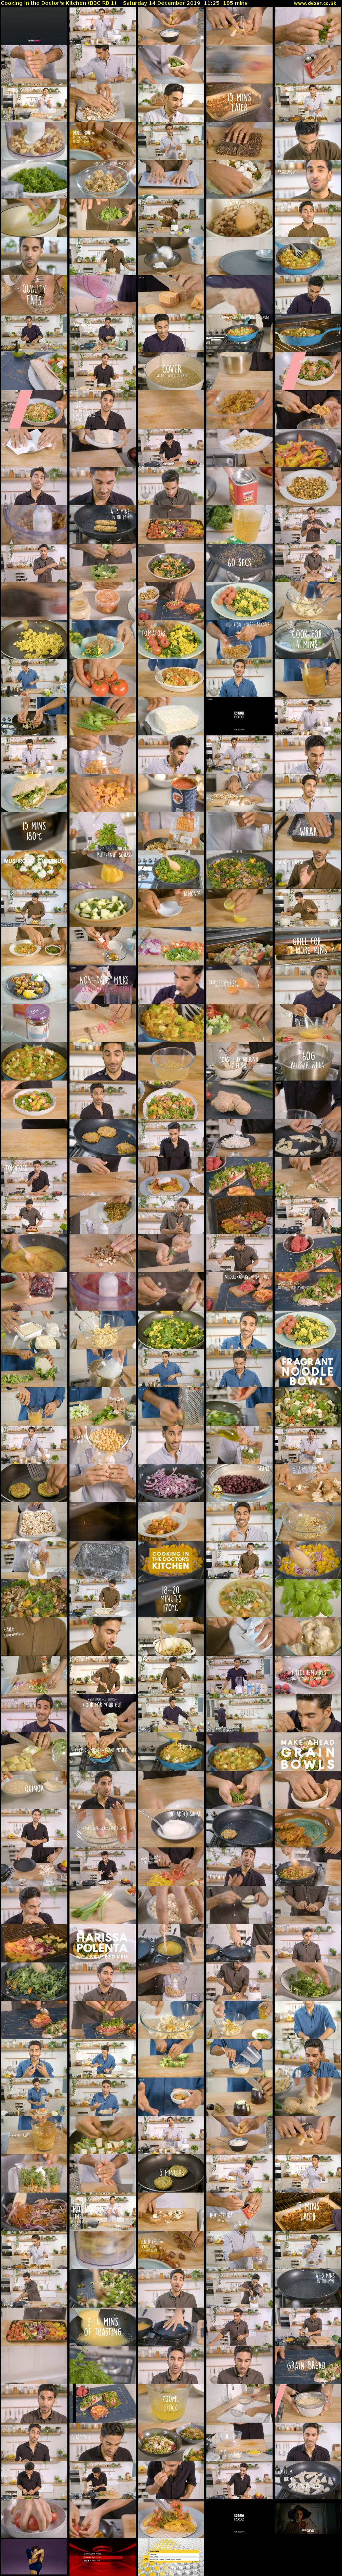 Cooking in the Doctor's Kitchen (BBC RB 1) Saturday 14 December 2019 11:25 - 14:30